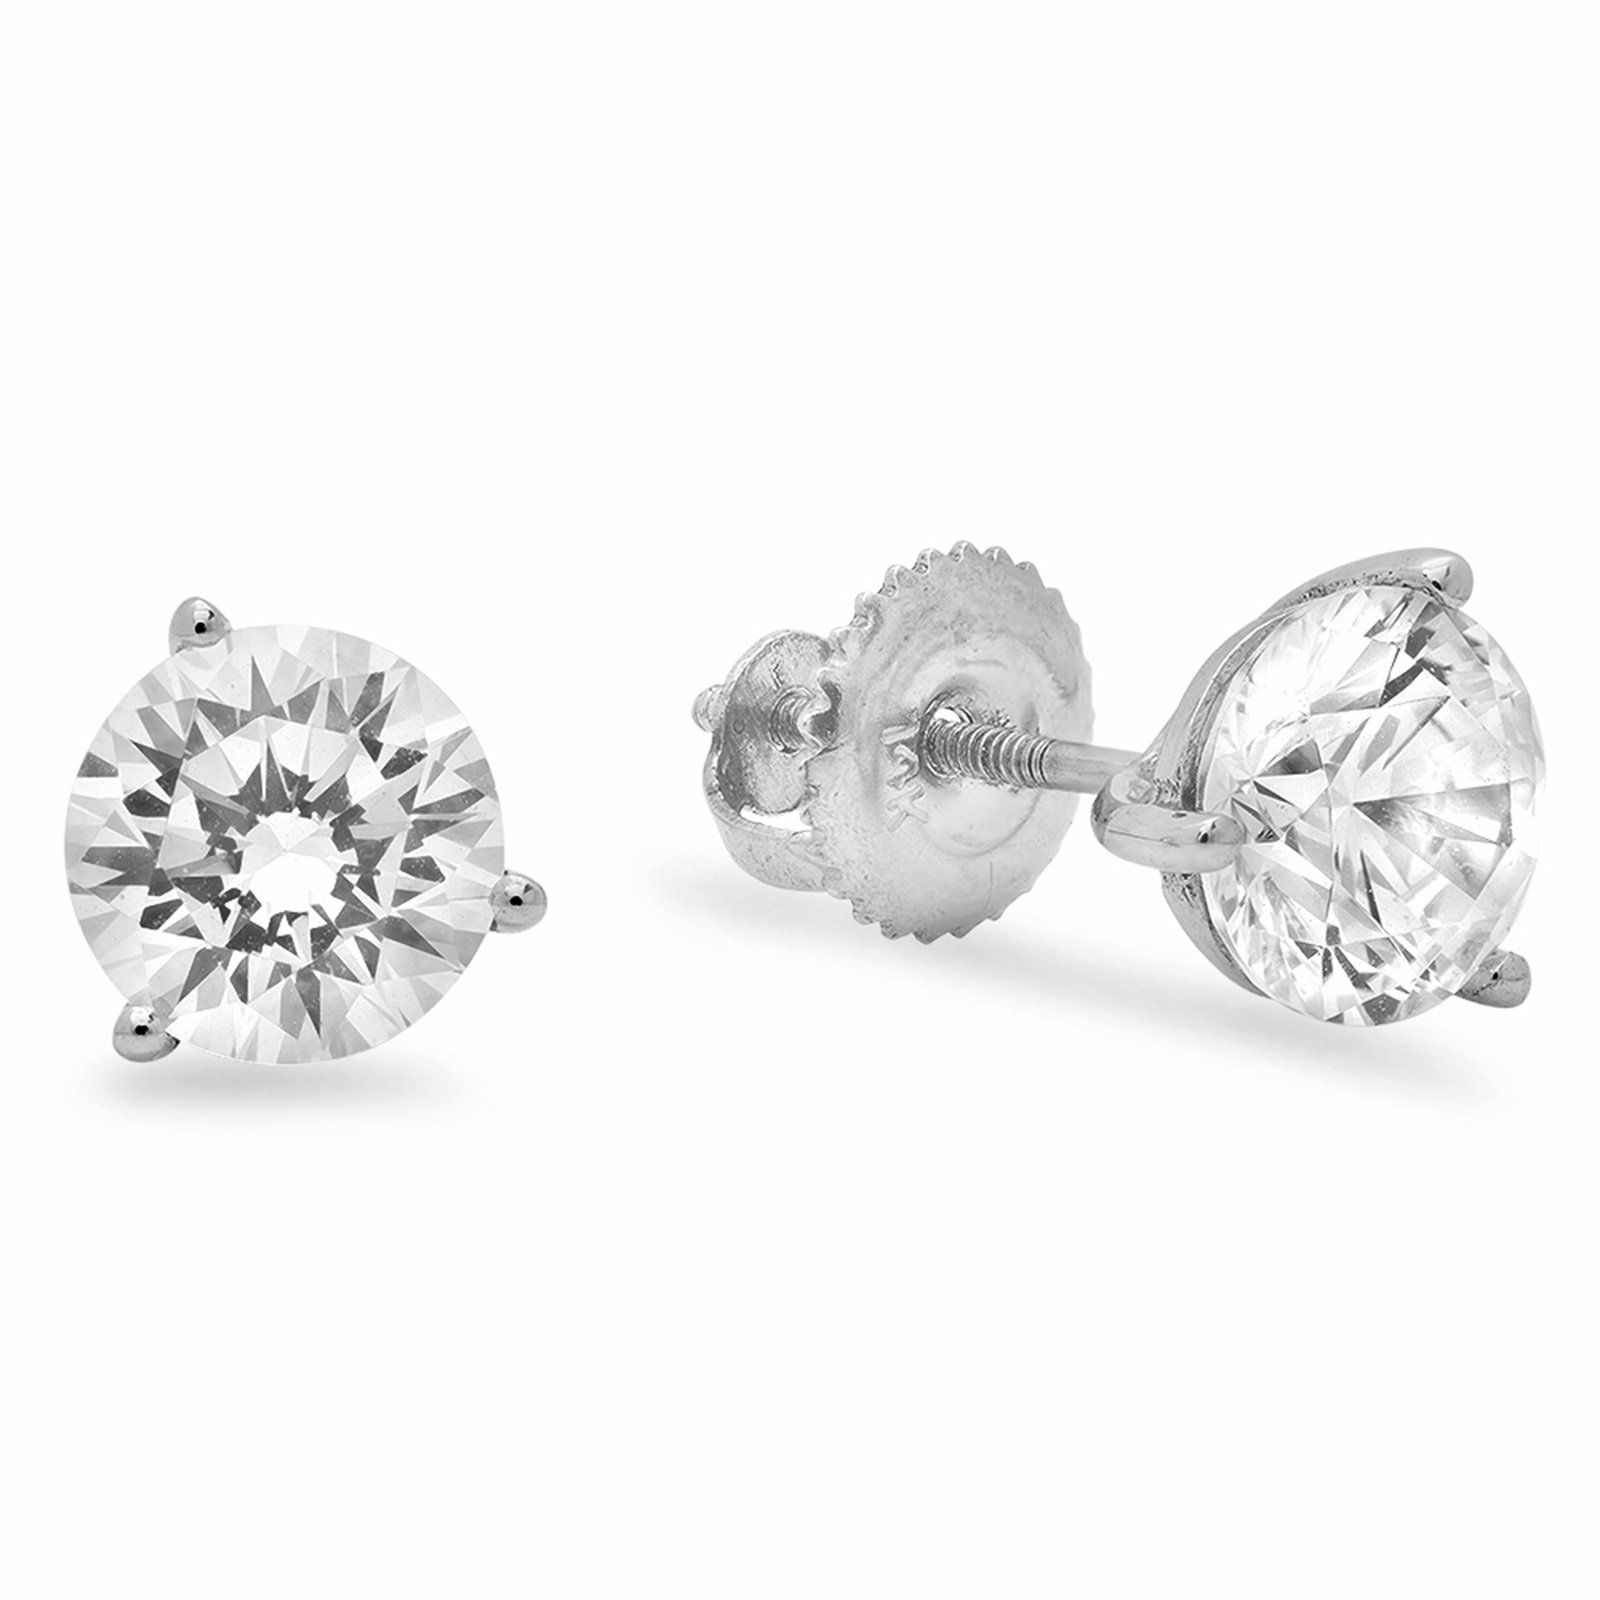 2 0 ct Round Cut Simulated Diamond CZ Solitaire Martini Style Stud